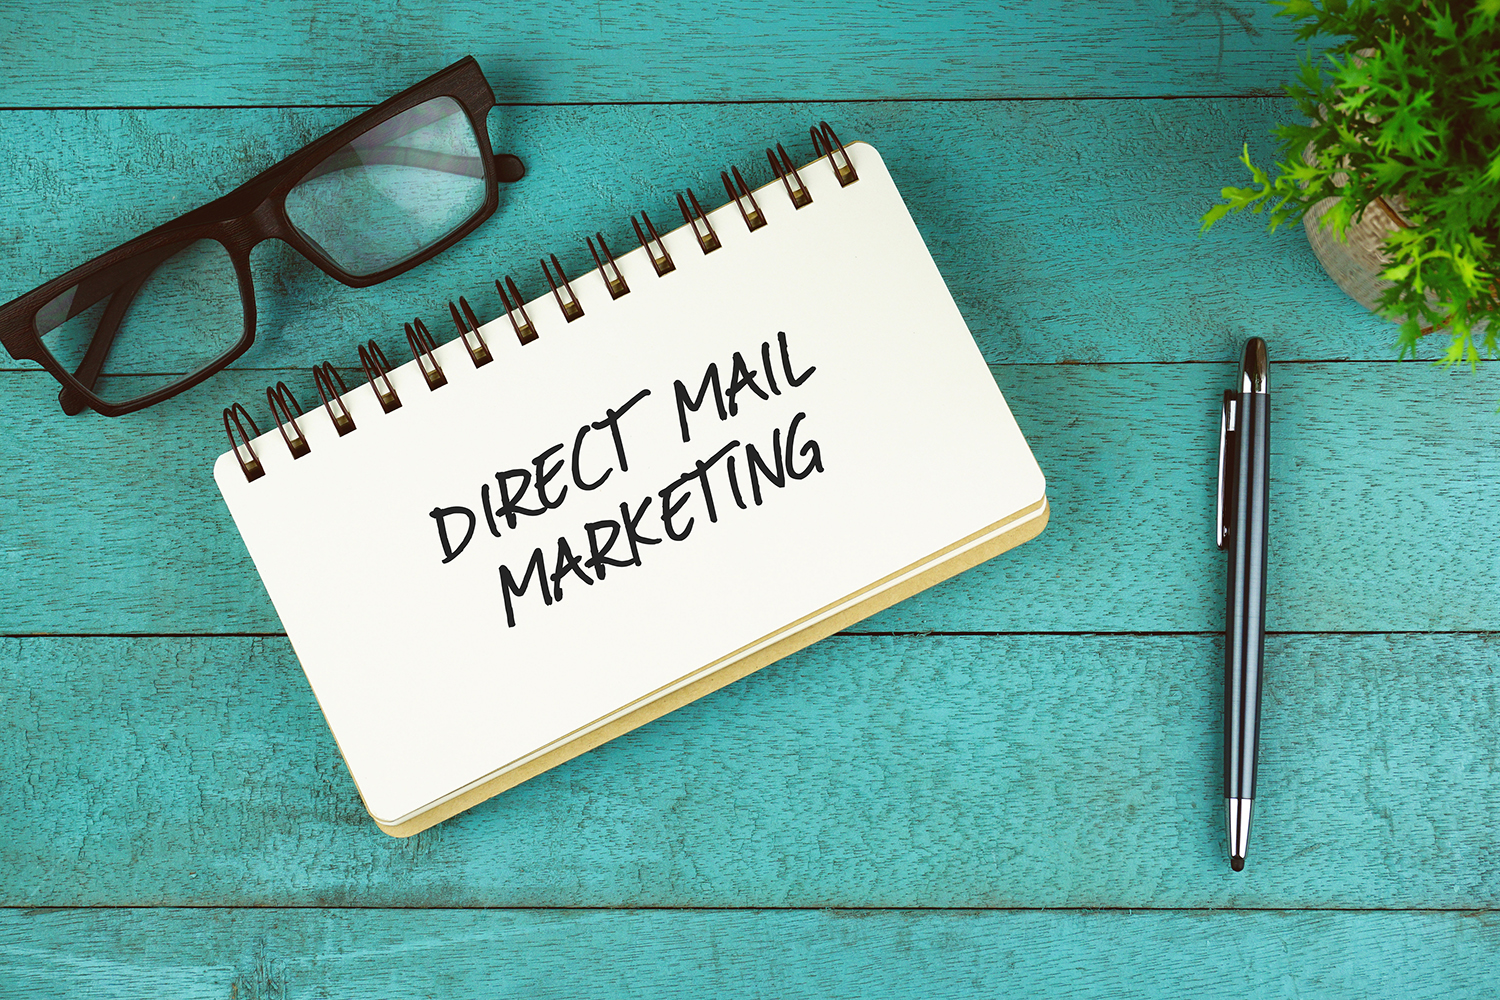 The Return of Direct Marketing